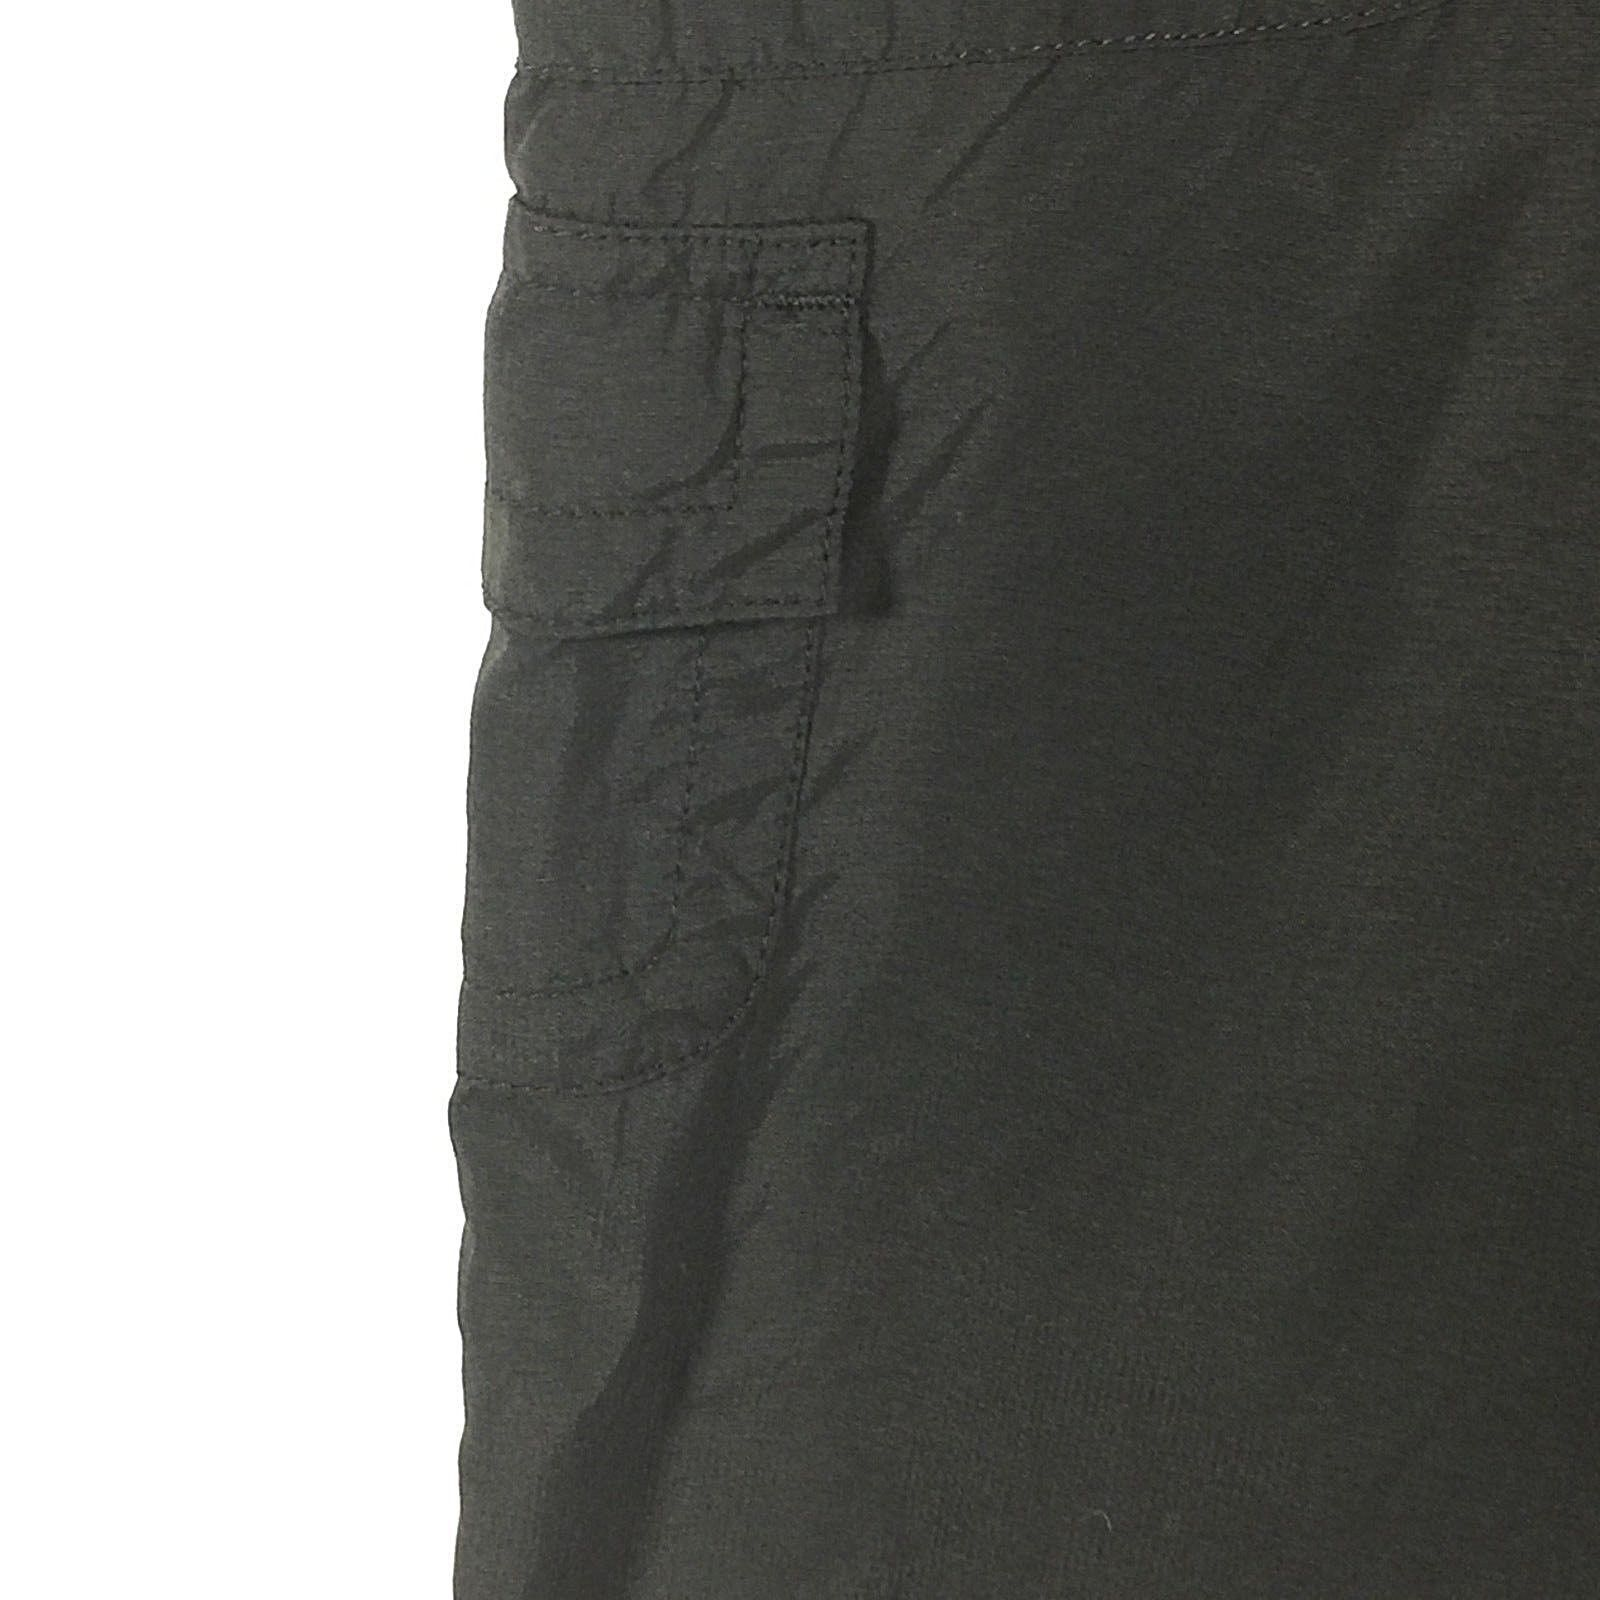 North Face Womens Cargo Crop Bermuda Size 10 Black Pants